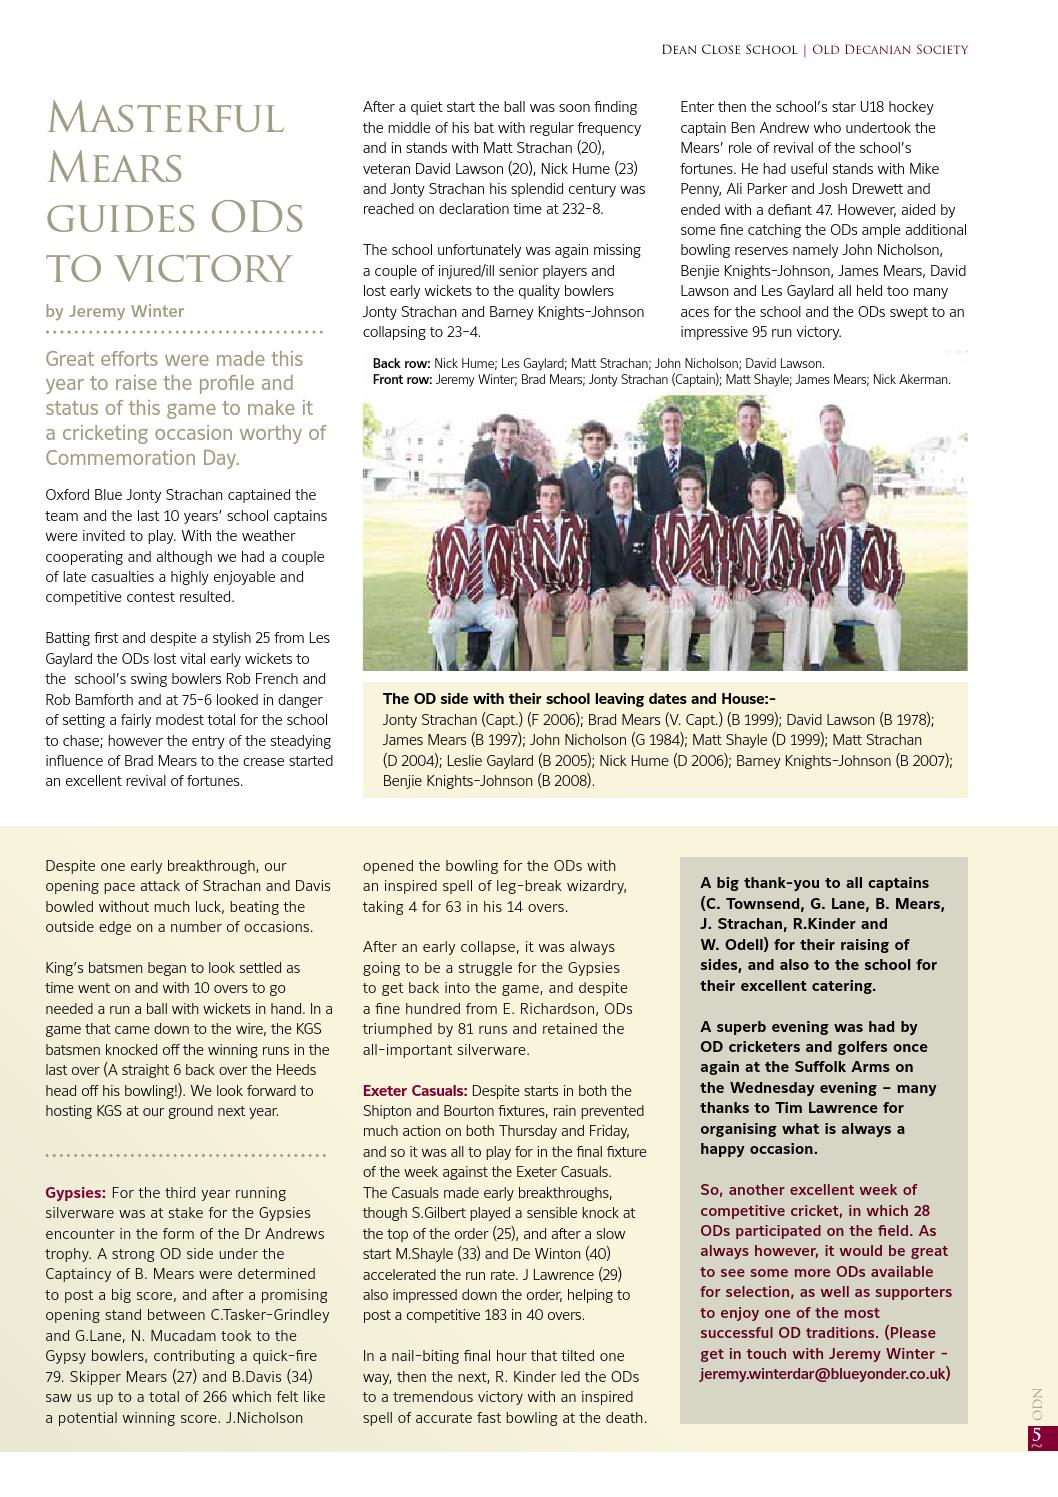 After Such Quiet Modest Start It Closes >> Old Decanian News Summer 2010 By Dean Close School Issuu